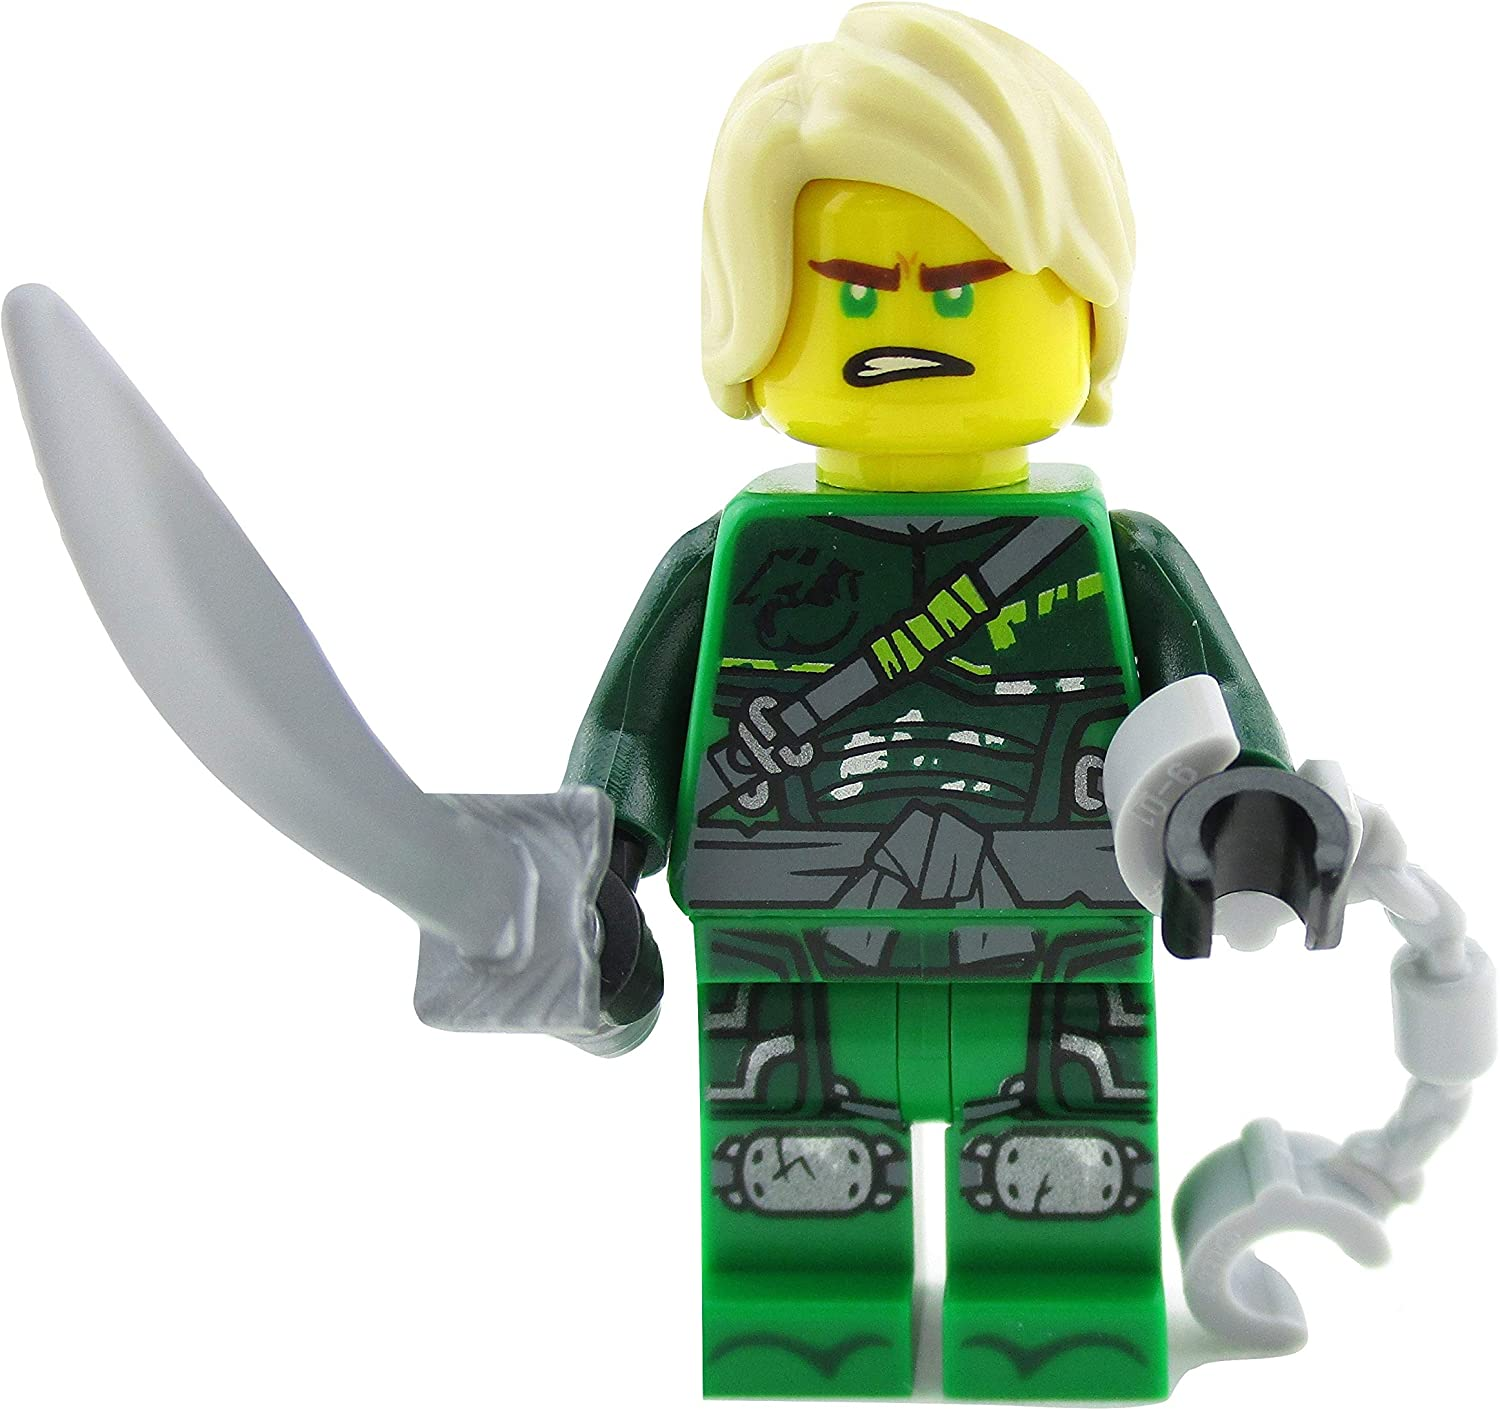 Amazon.com: LEGO Ninjago Lloyd Green Ninja 70651 - Mini ...